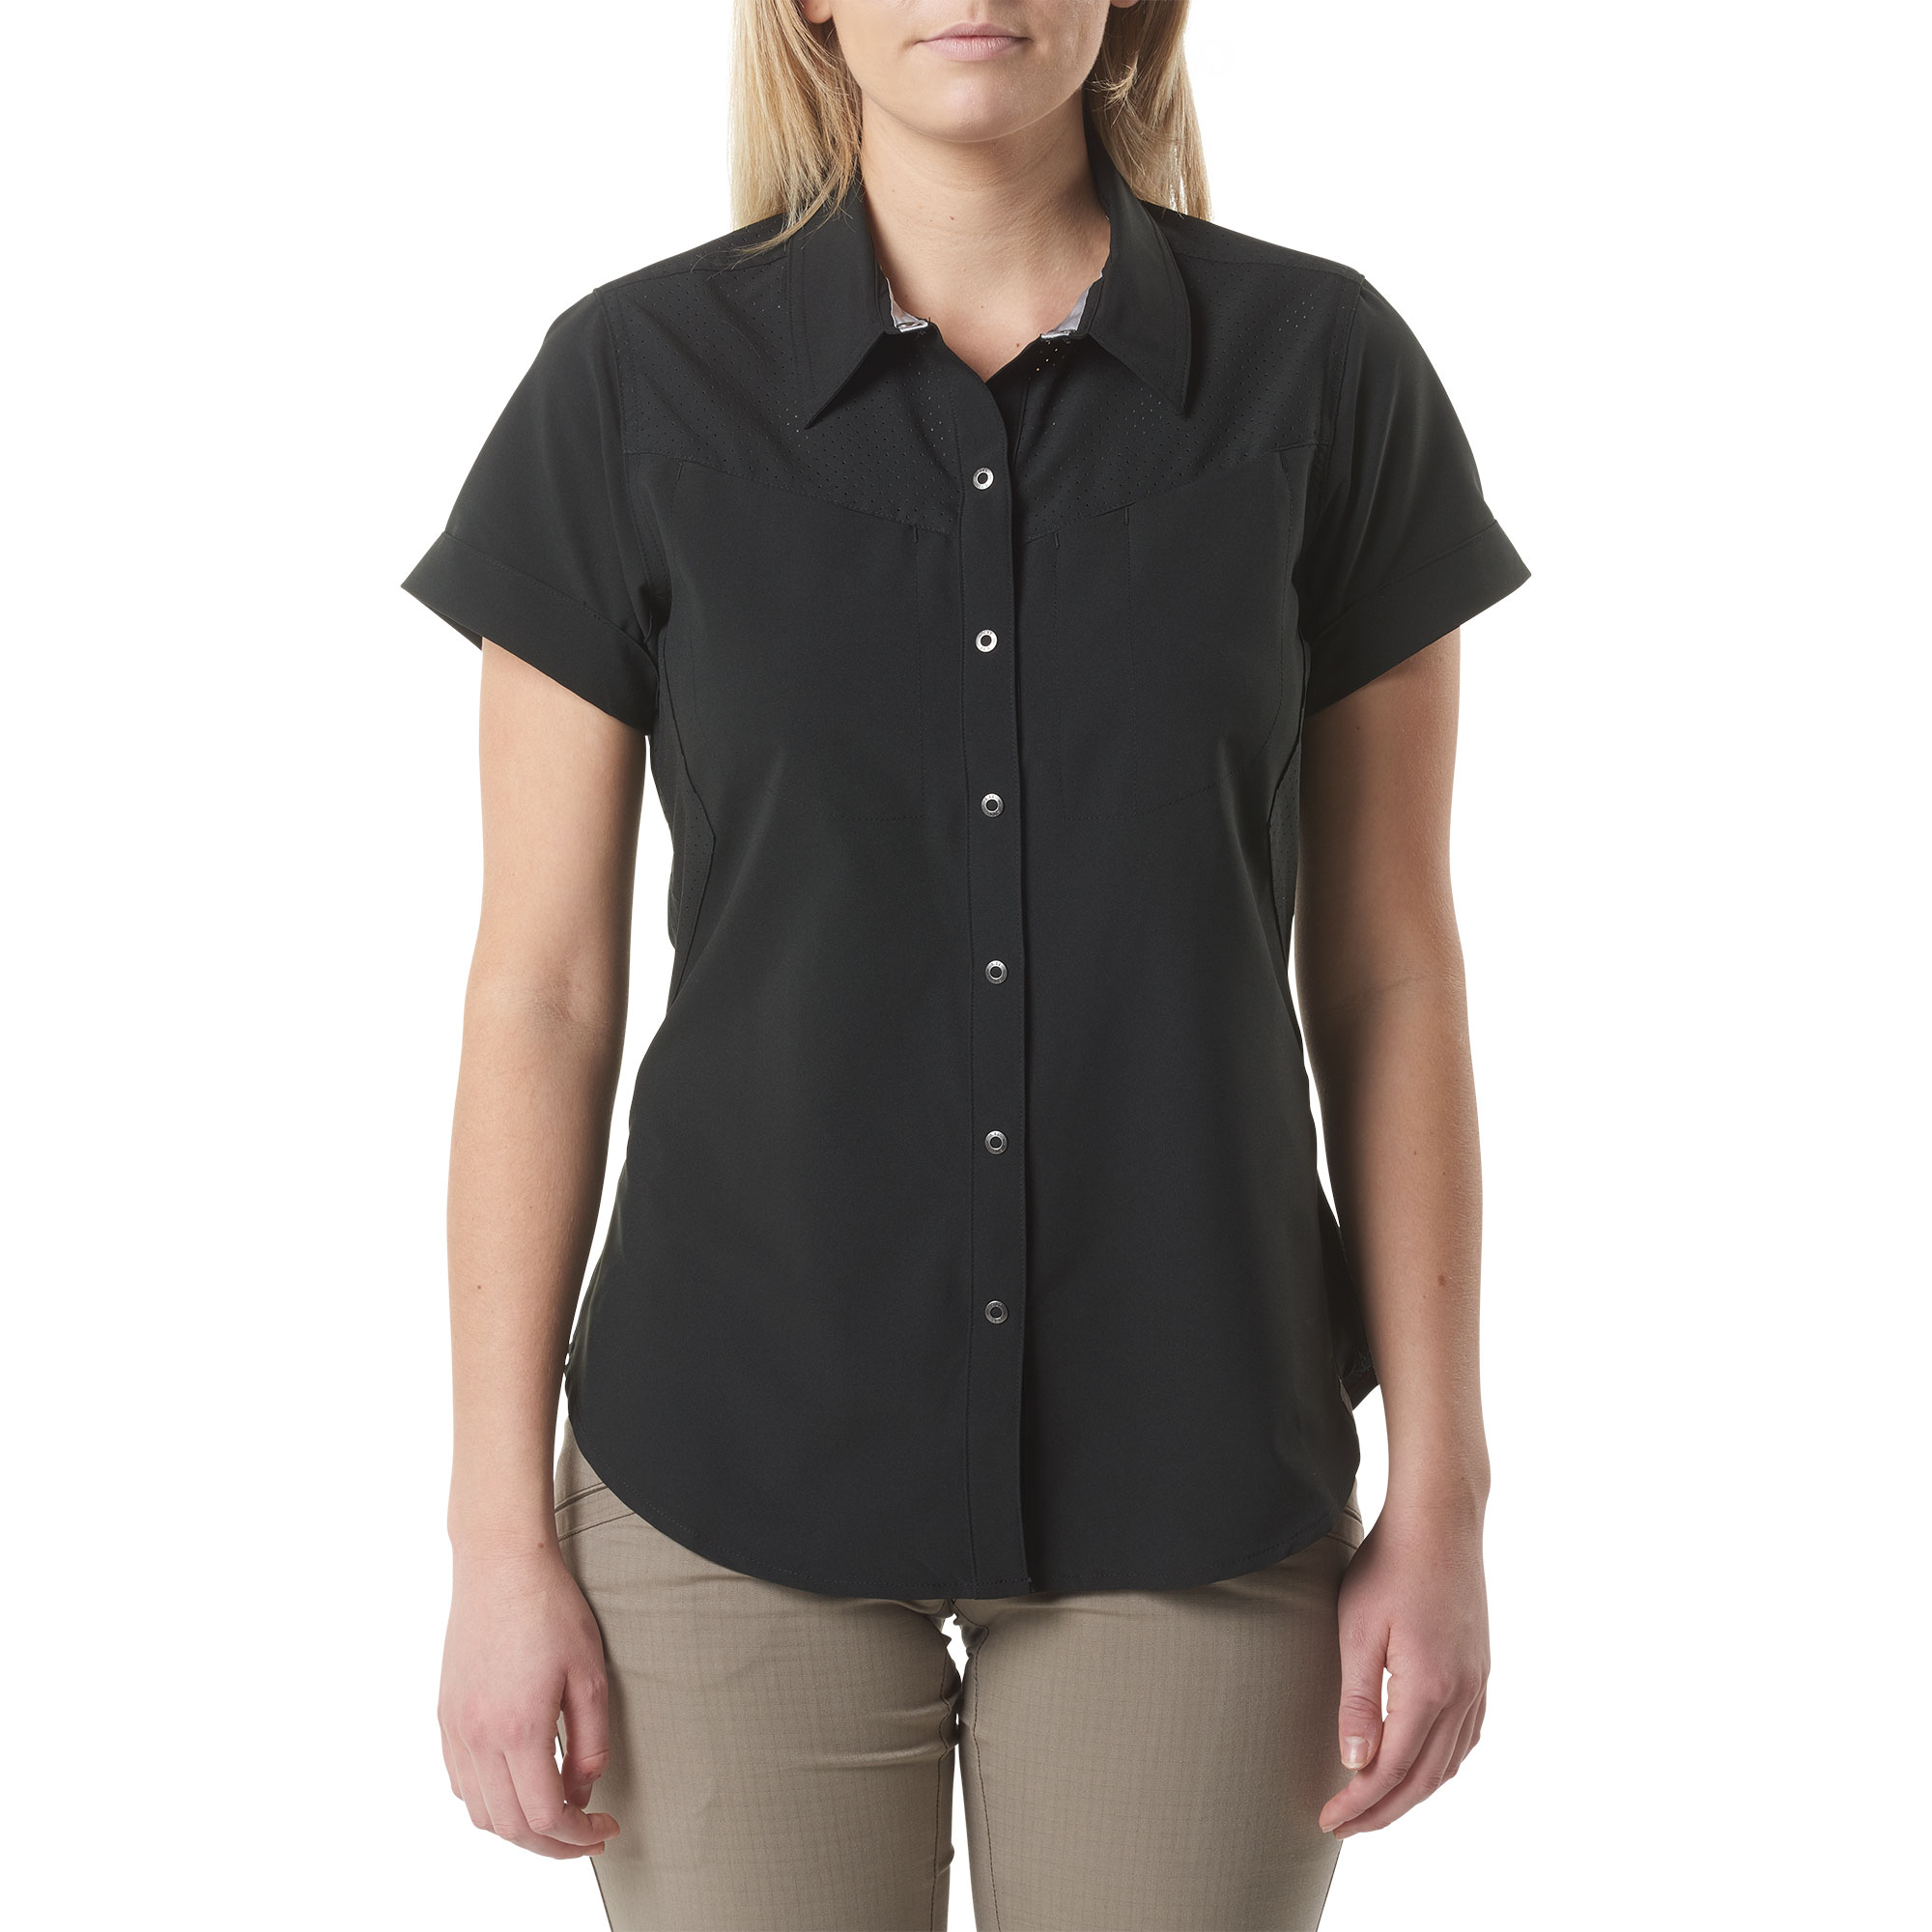 5.11 Tactical Women's Freedom Flex™ Short-Sleeve Shirt (Black), Size S (CCW Concealed Carry)